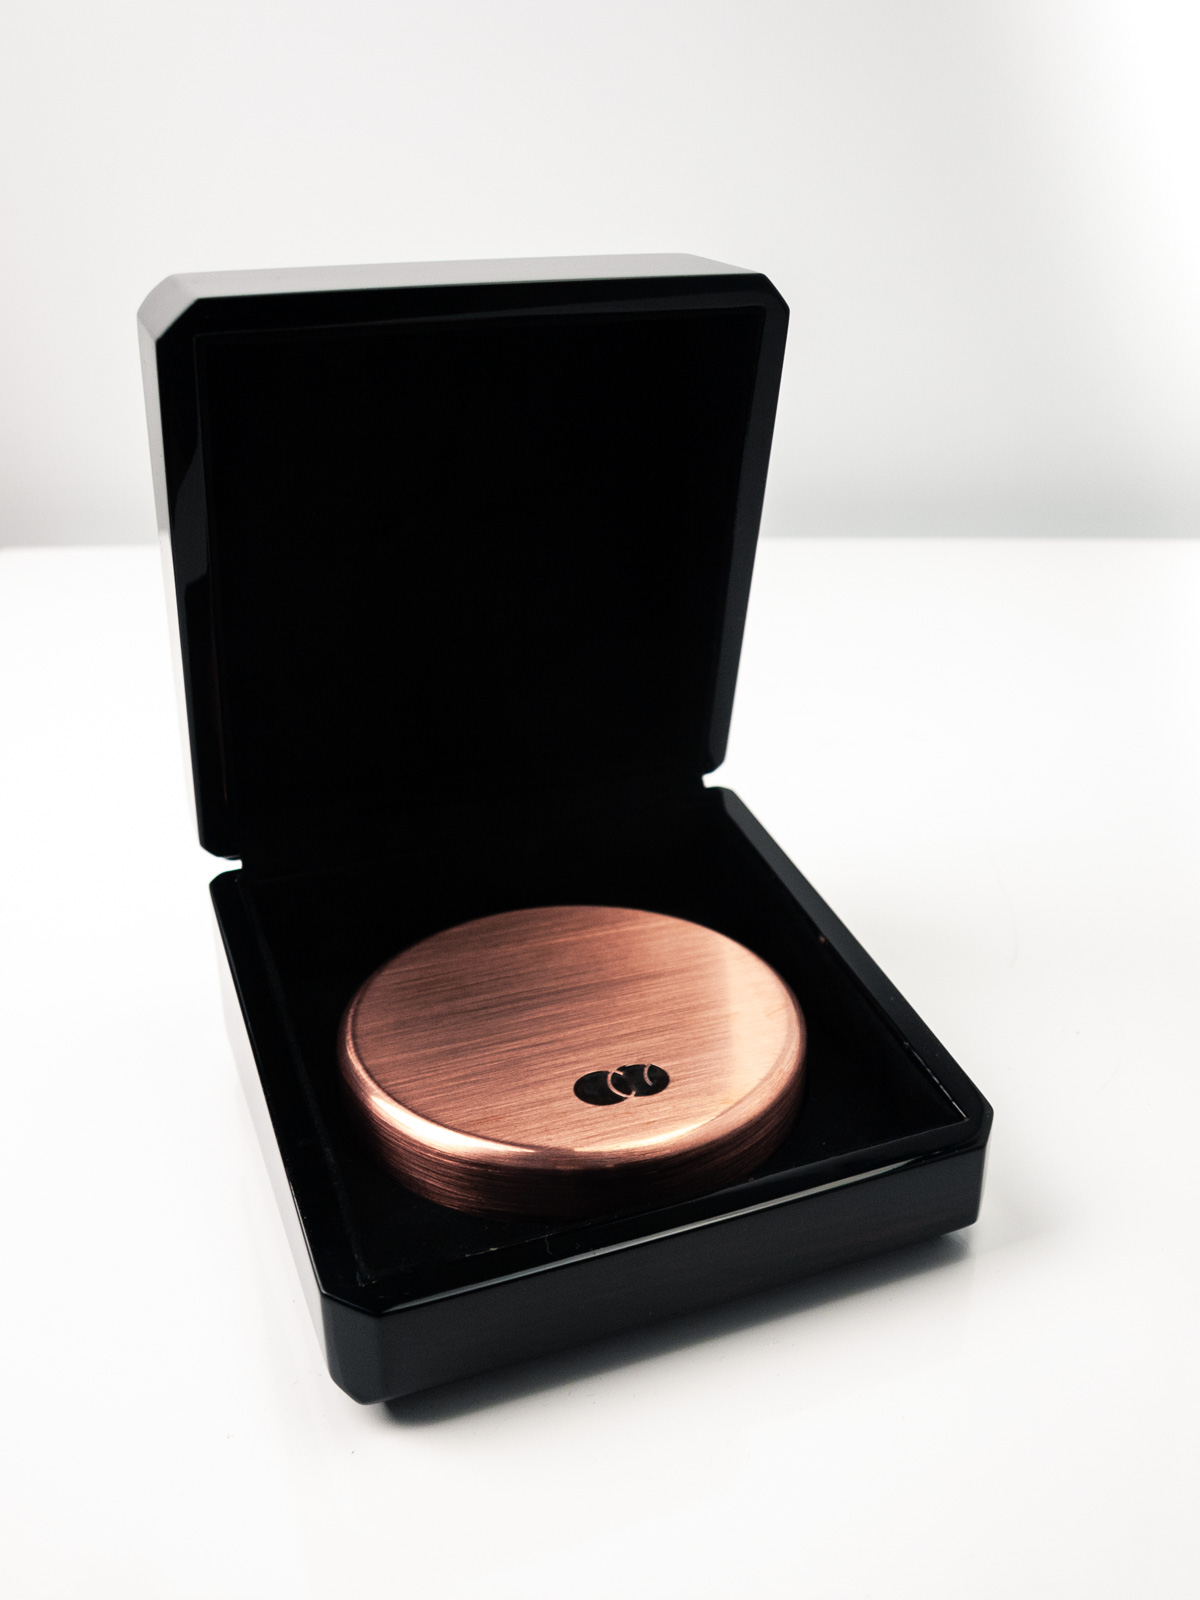 Bespoke object for Mastercard with box